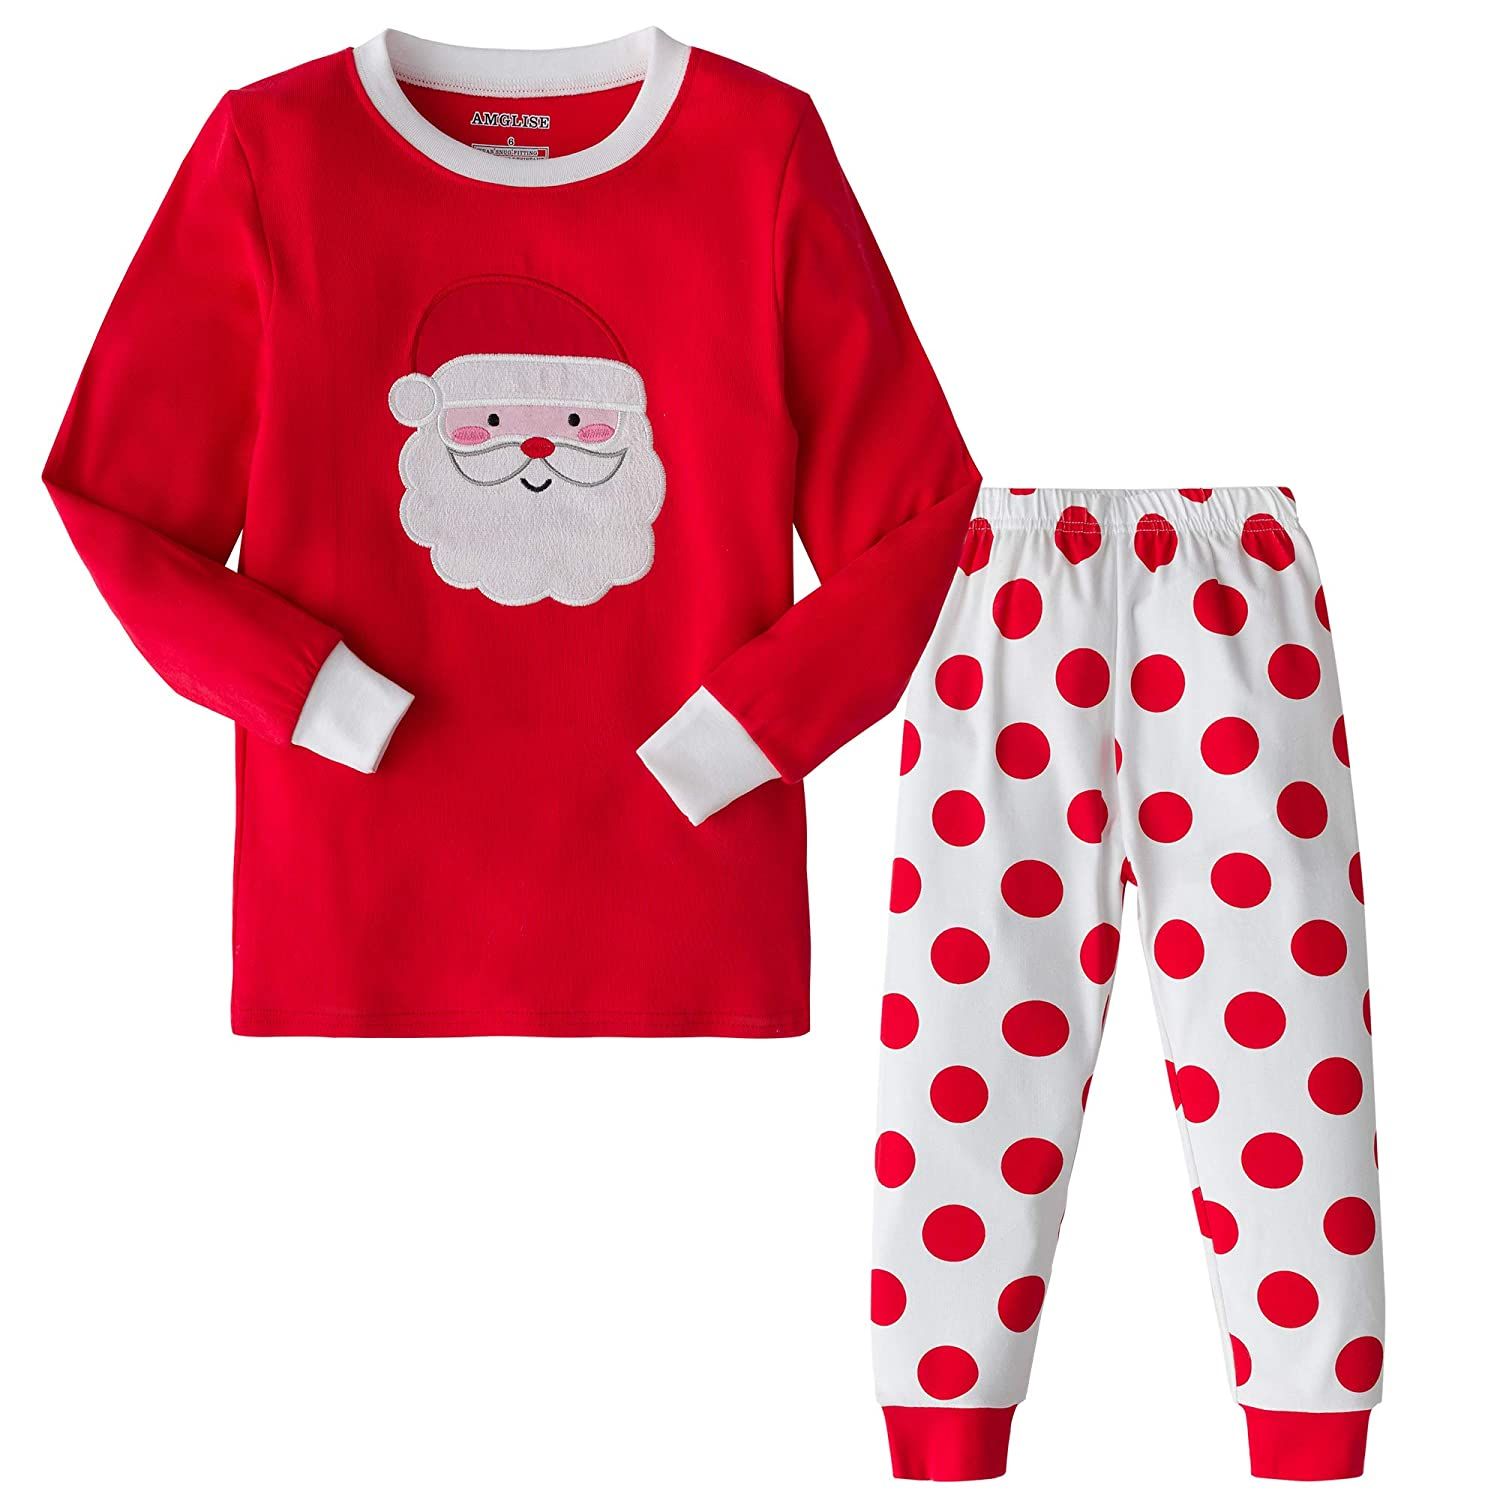 AMGLISE Christmas Pajamas Set Santa Claus Cotton Pajamas for Boys Girls Kids Pjs Toddler Sleepwear